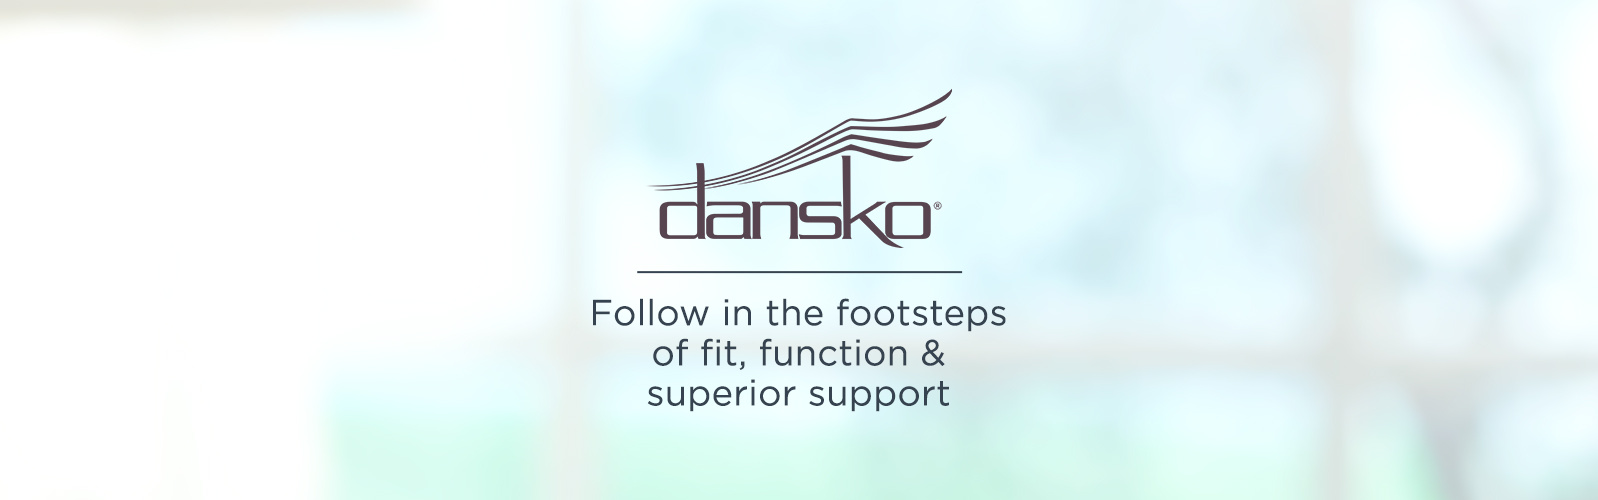 dansko Follow in the footsteps of fit, function & superior support